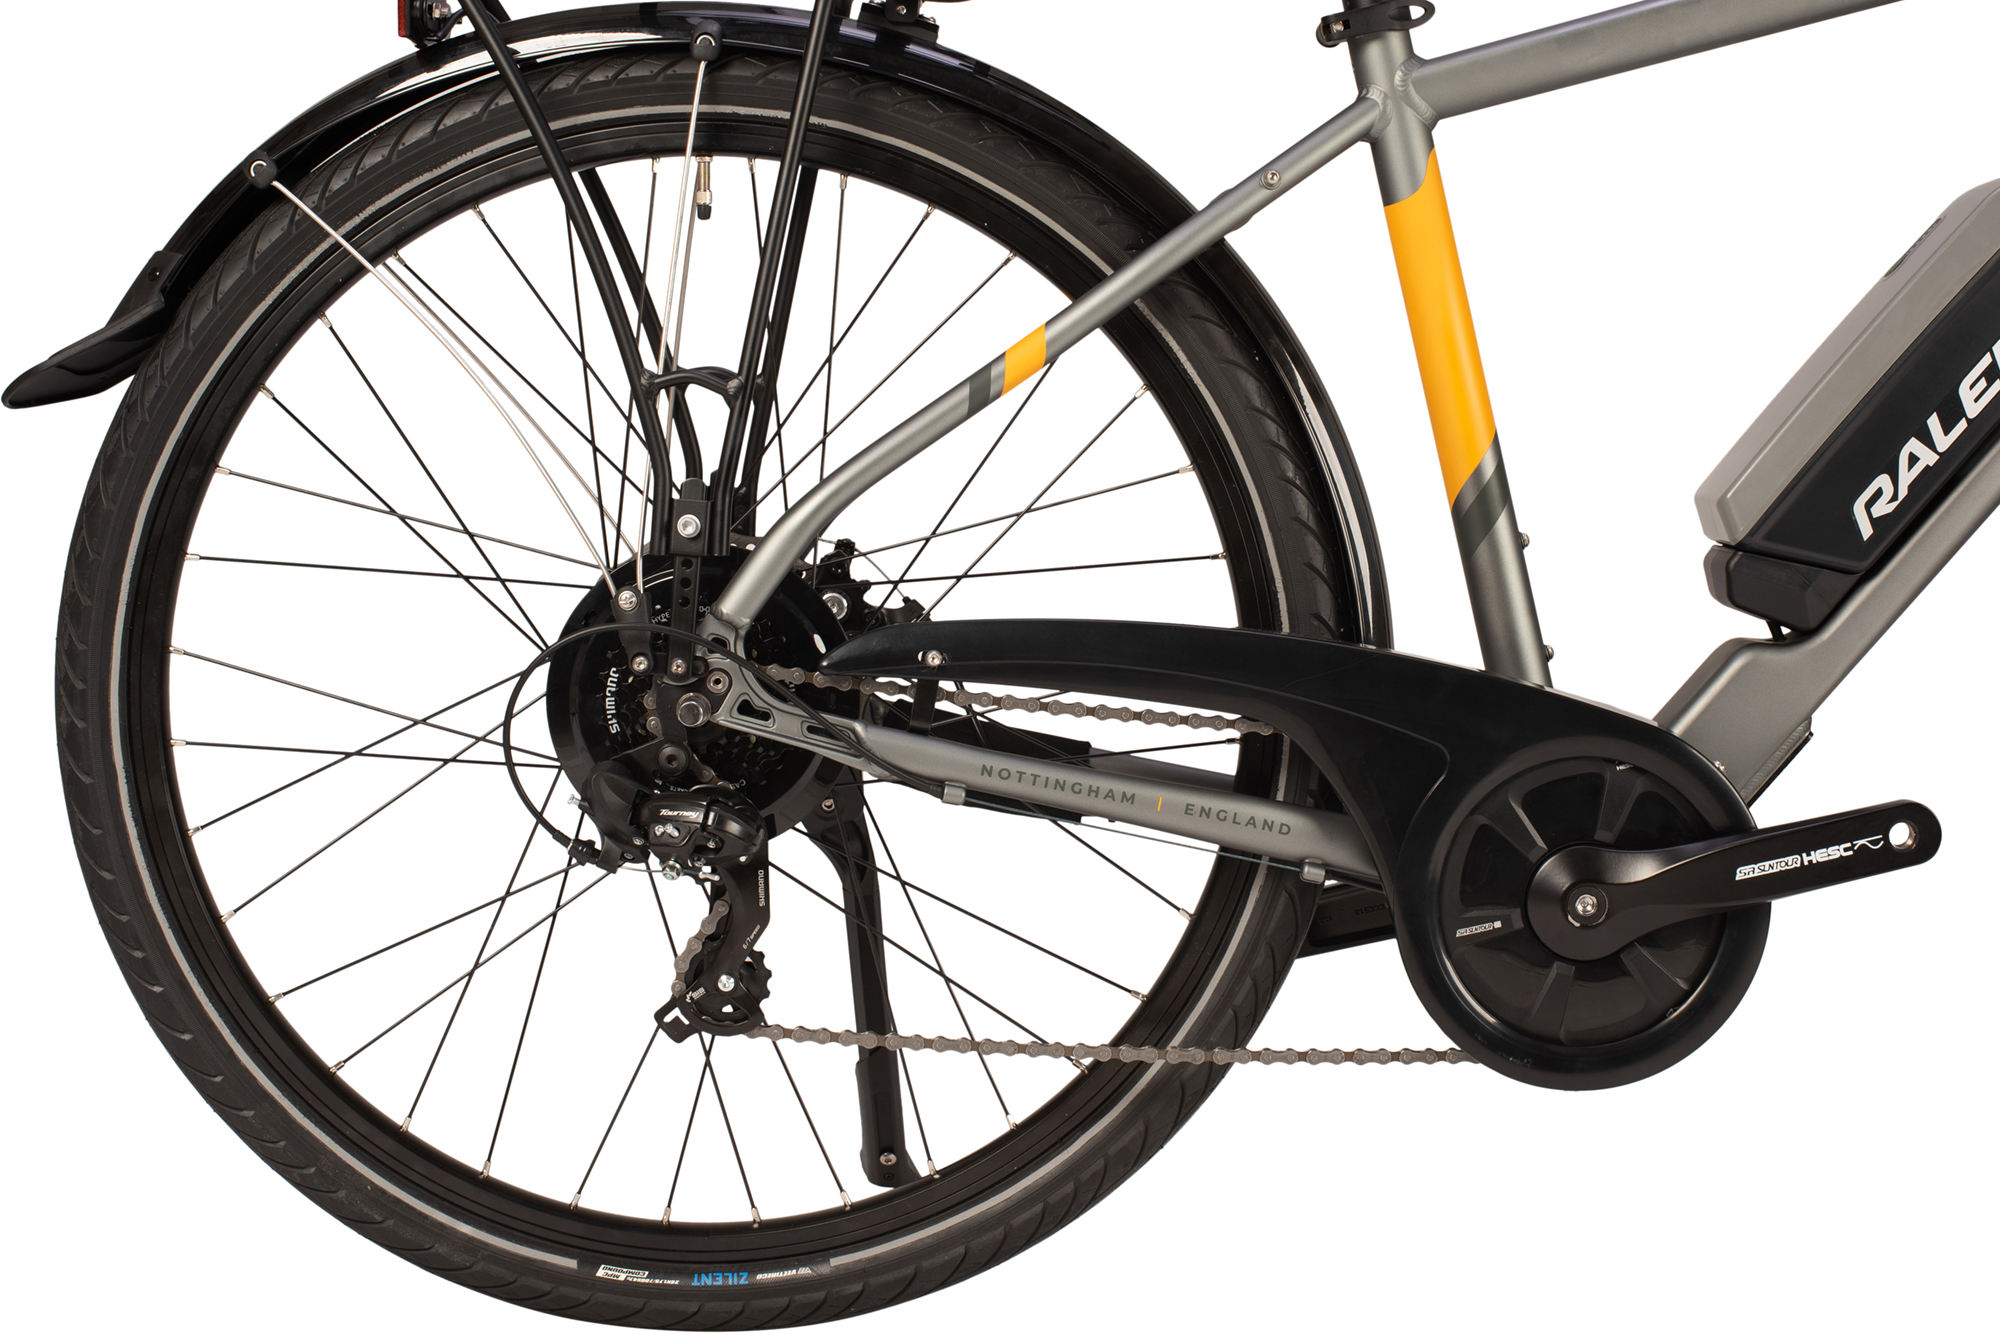 Rear wheel and drivetrain on the Raleigh Array electric bike